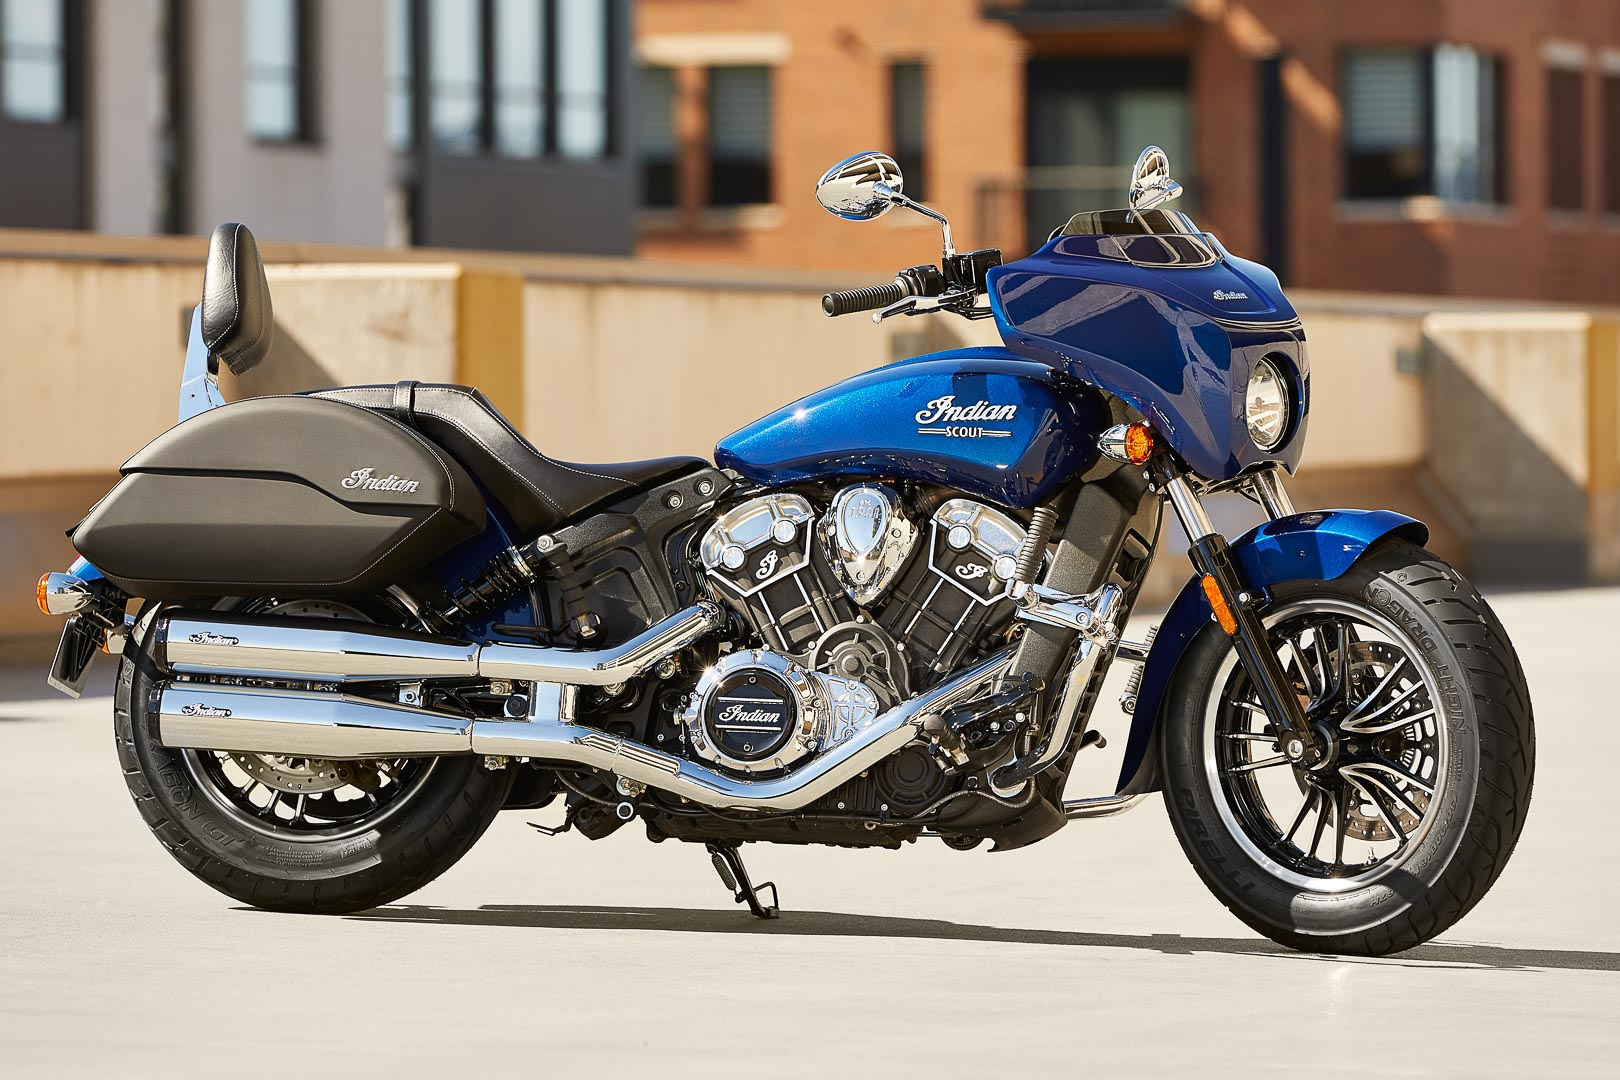 2021 Indian Scout Lineup: Touring Accessories